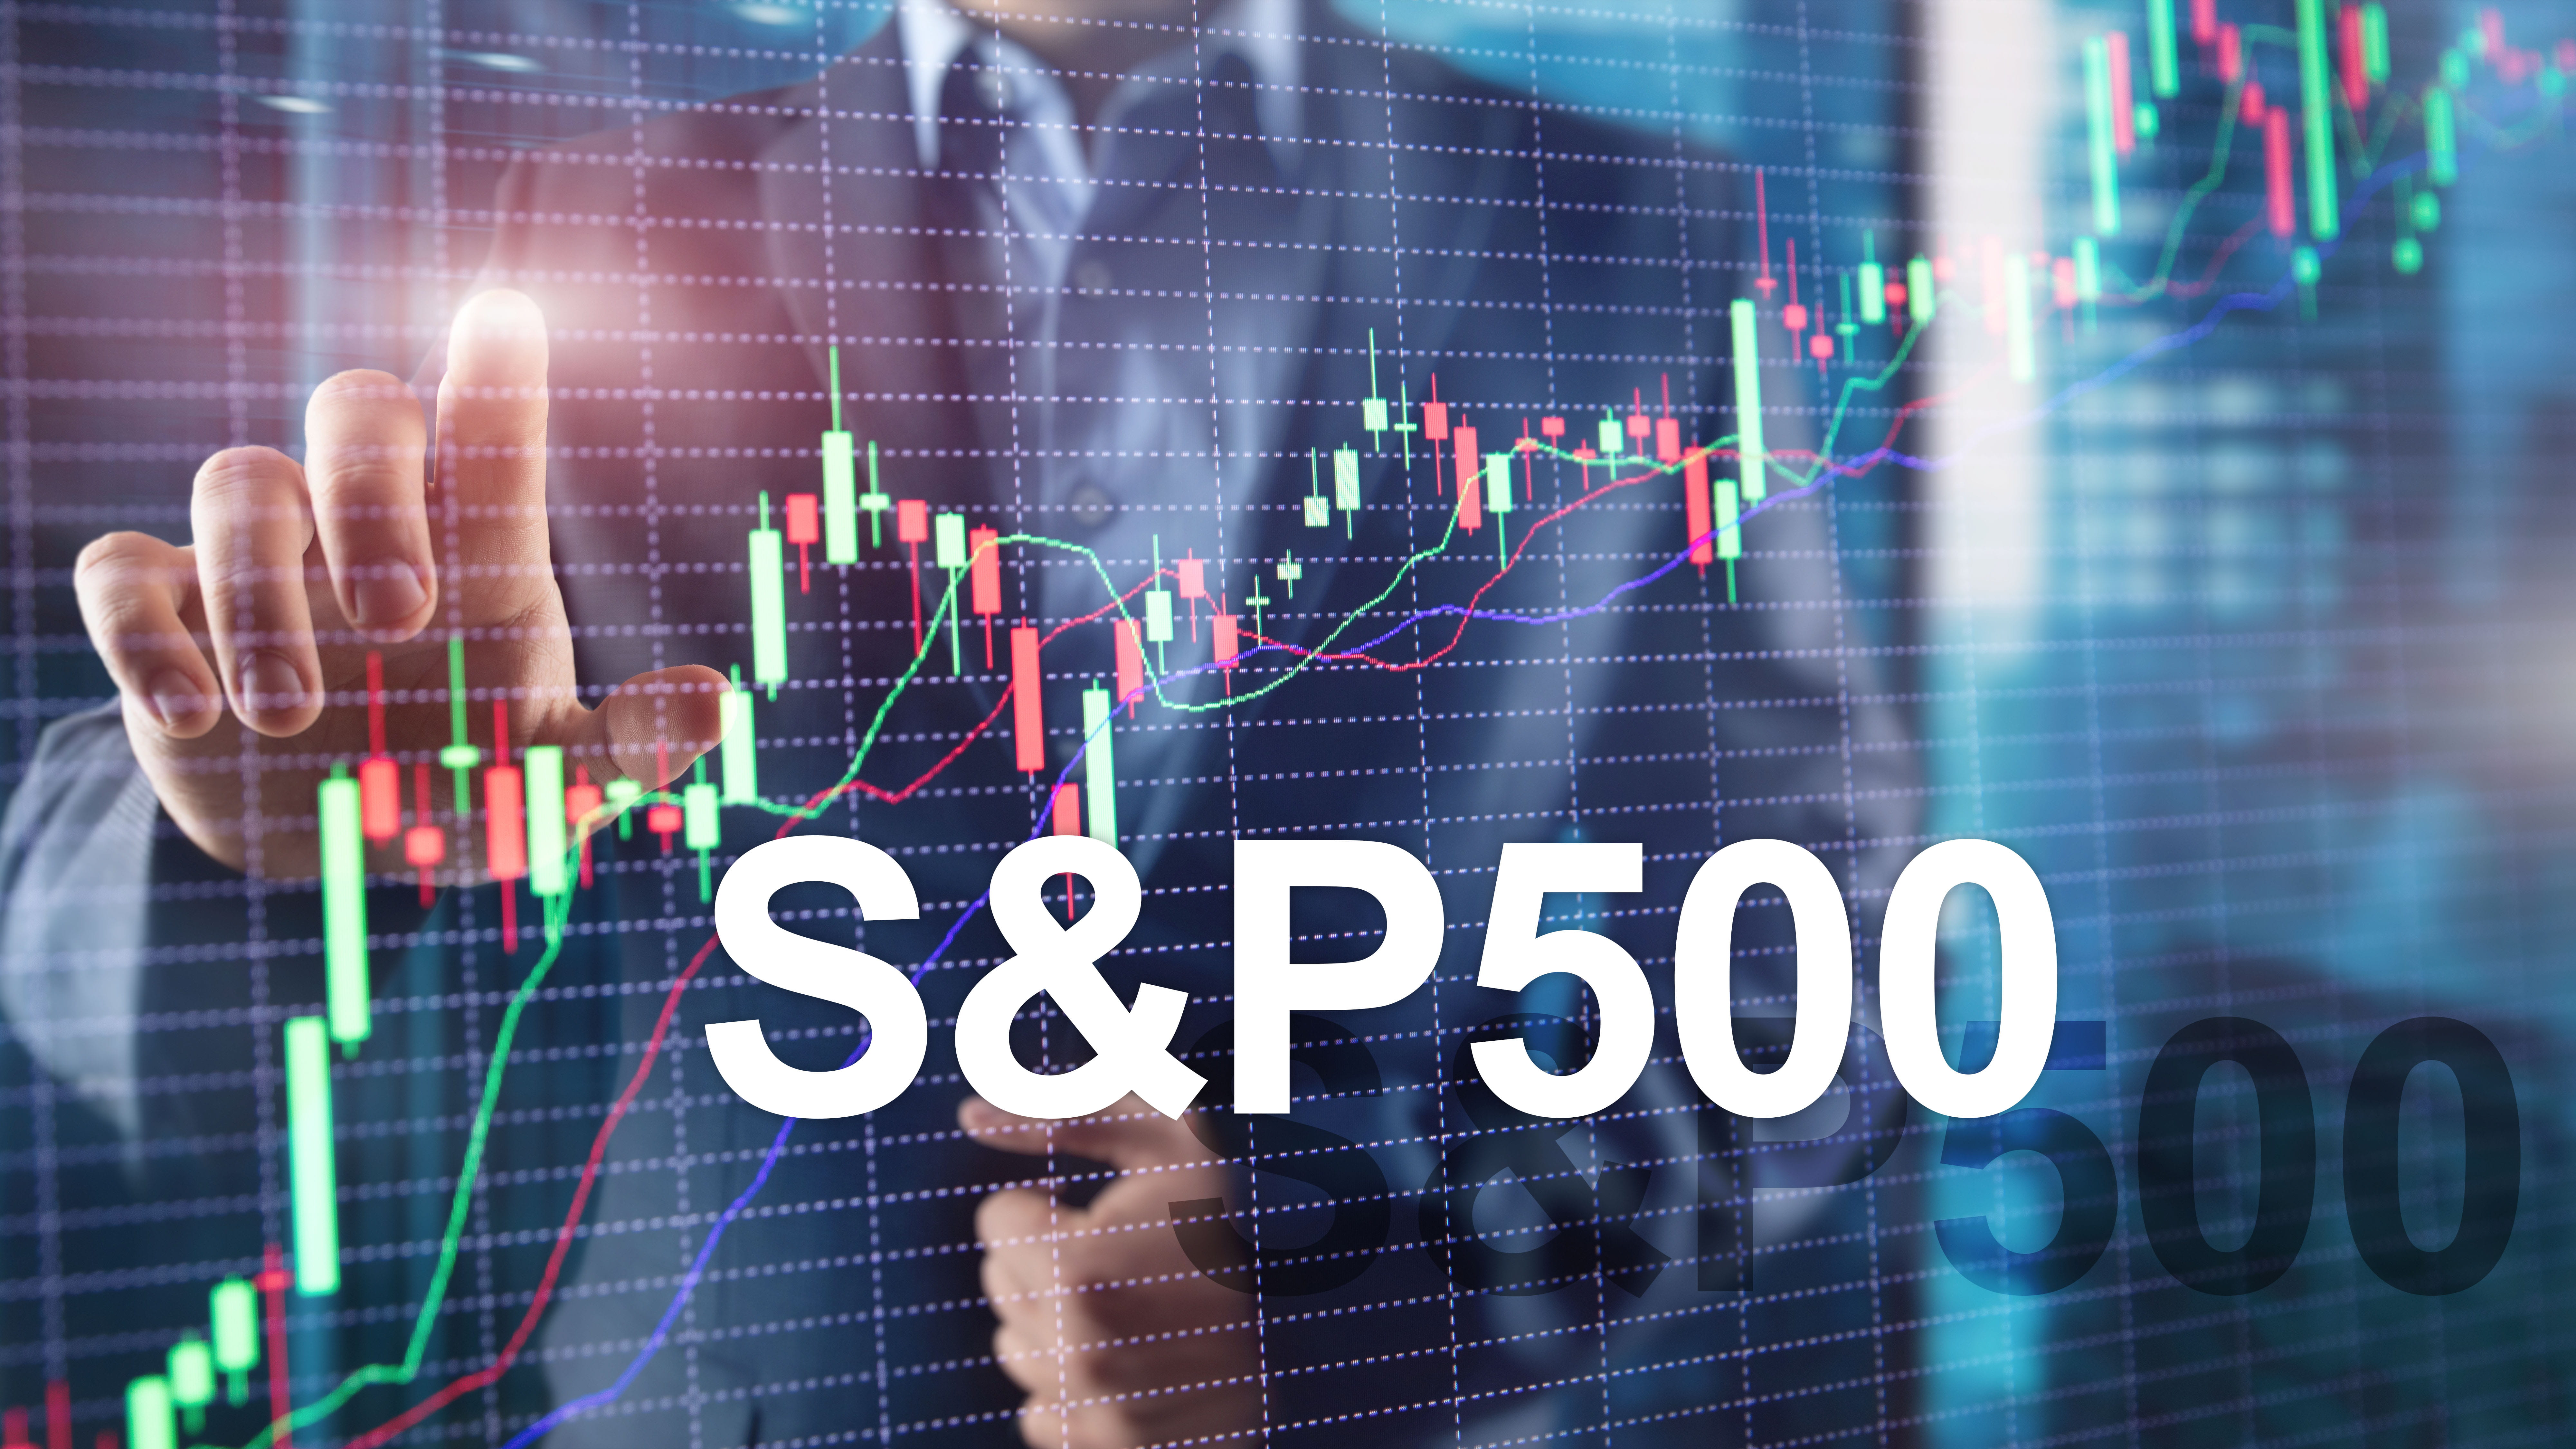 S&P 500 index chart with silhouette of business man in background pointing at chart